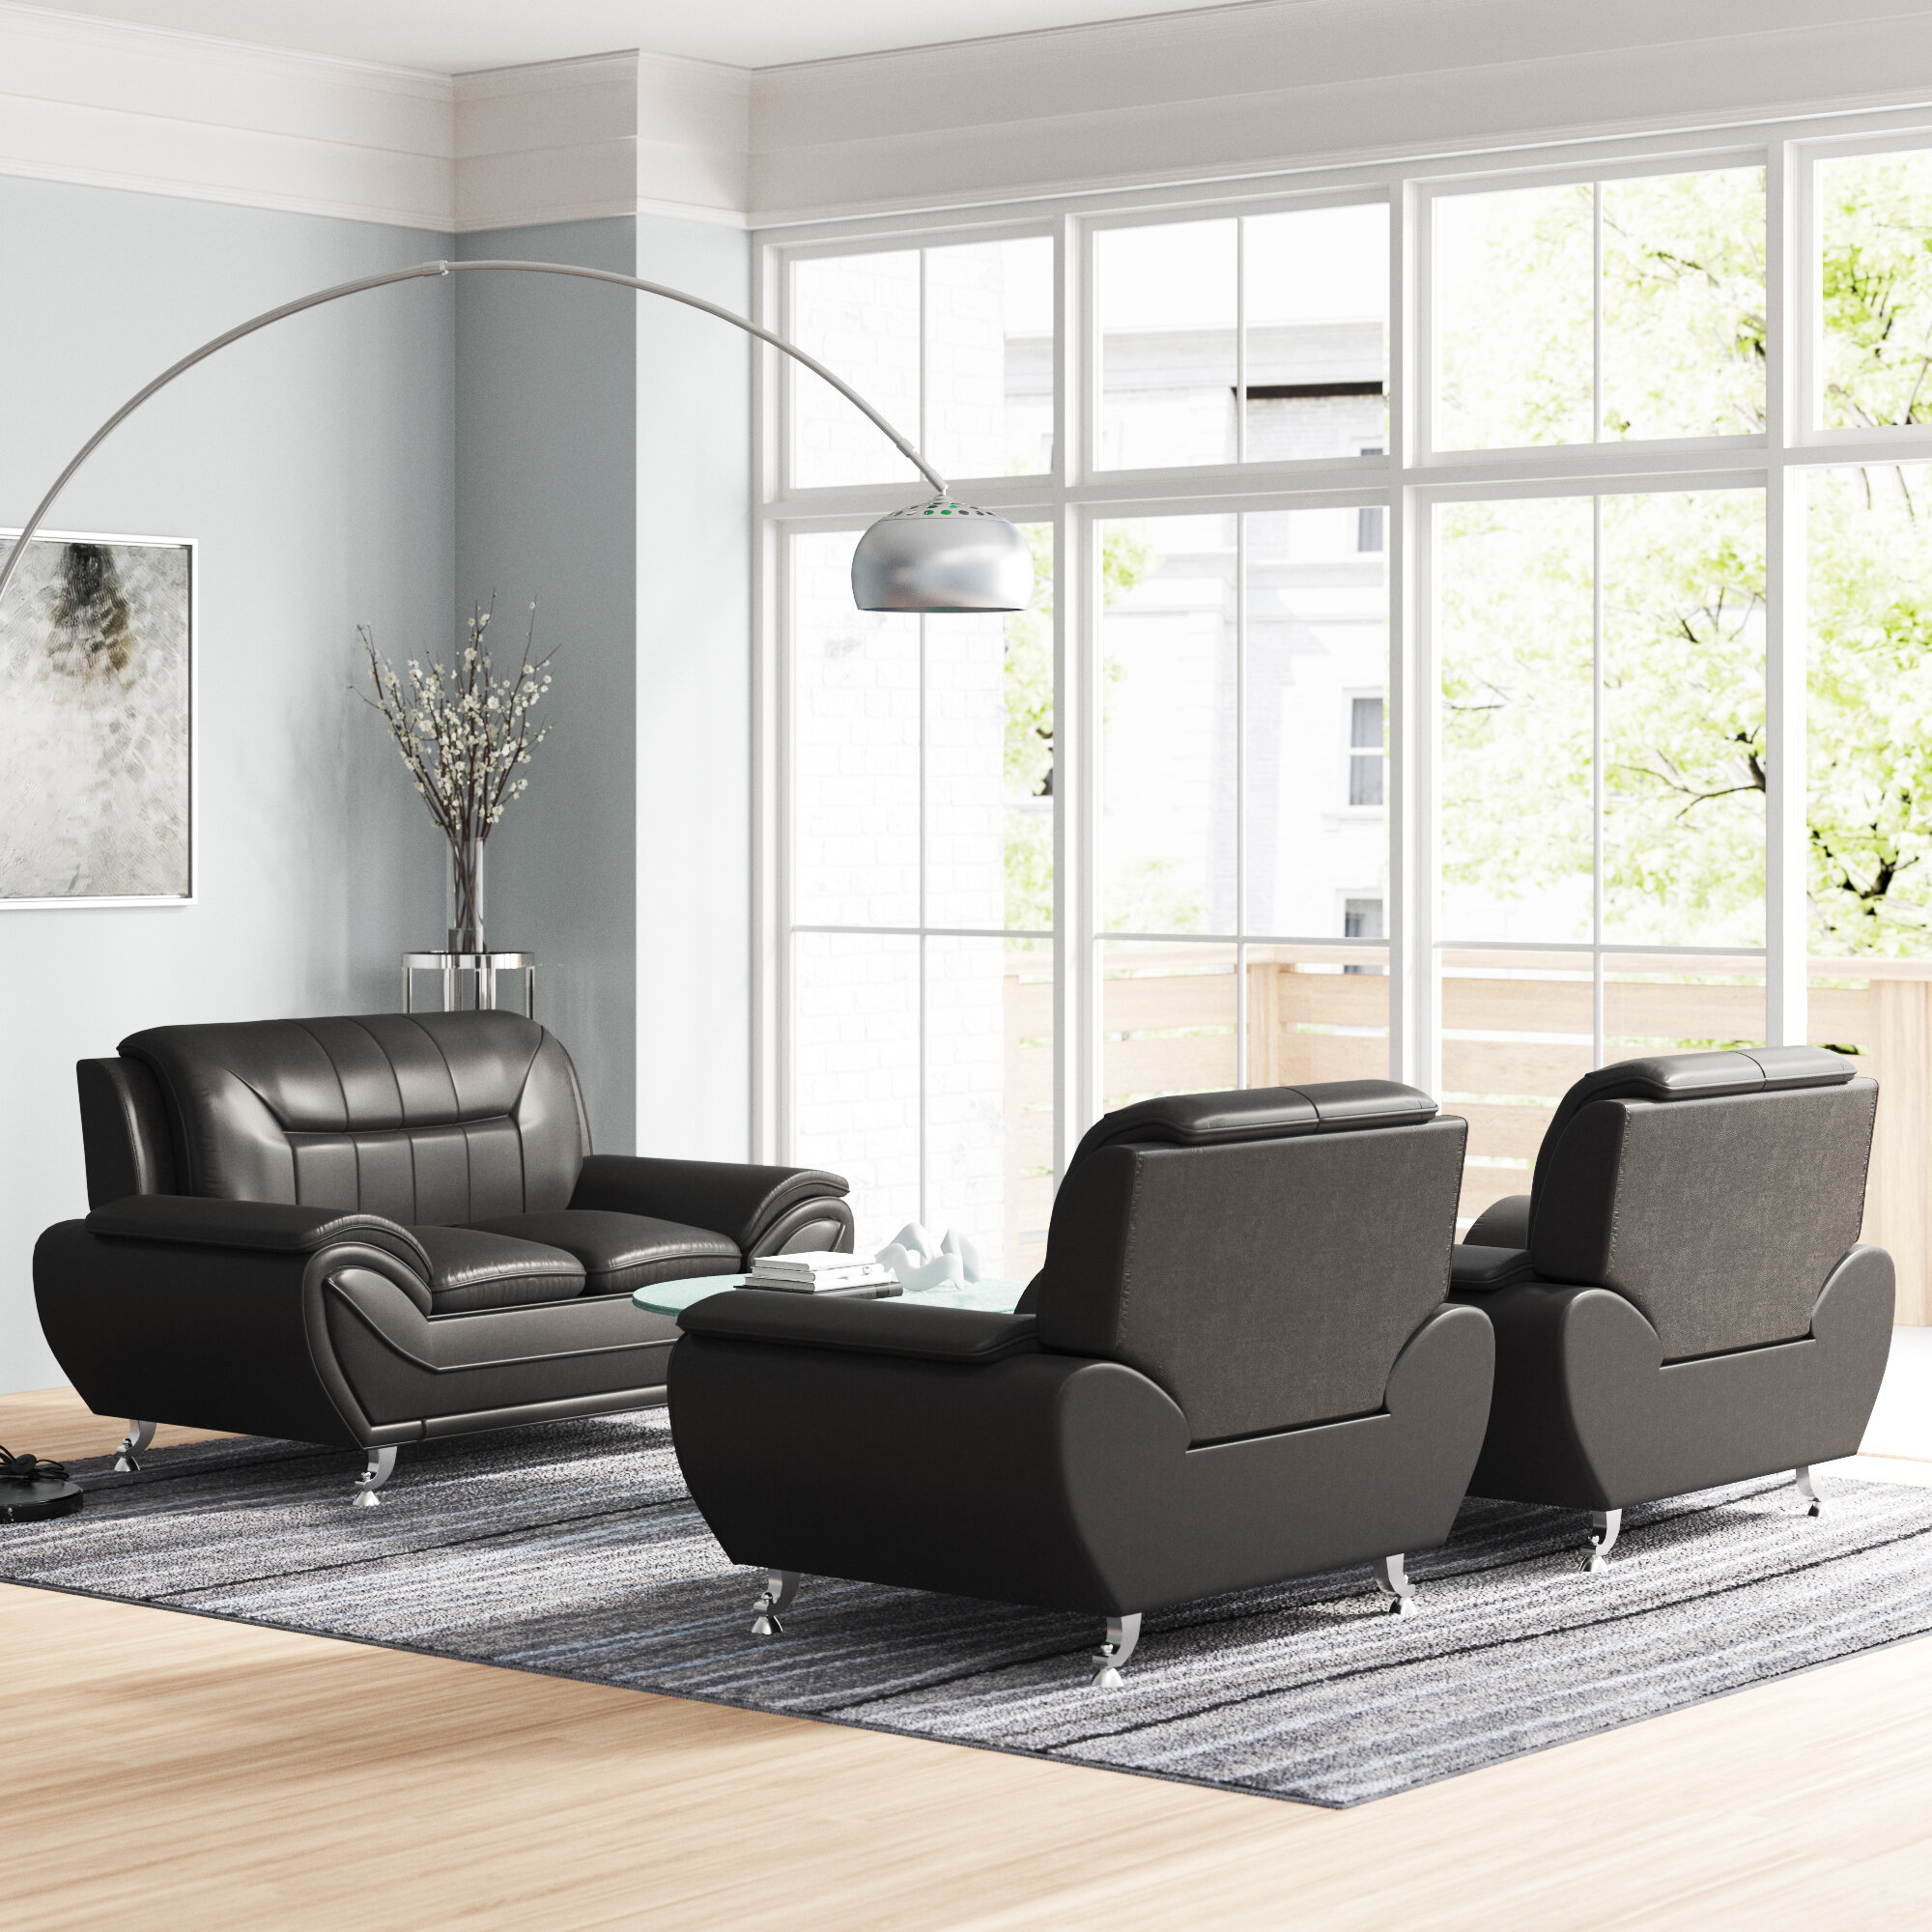 Cheap Living Room Sets You Ll Love In 2021 Wayfair